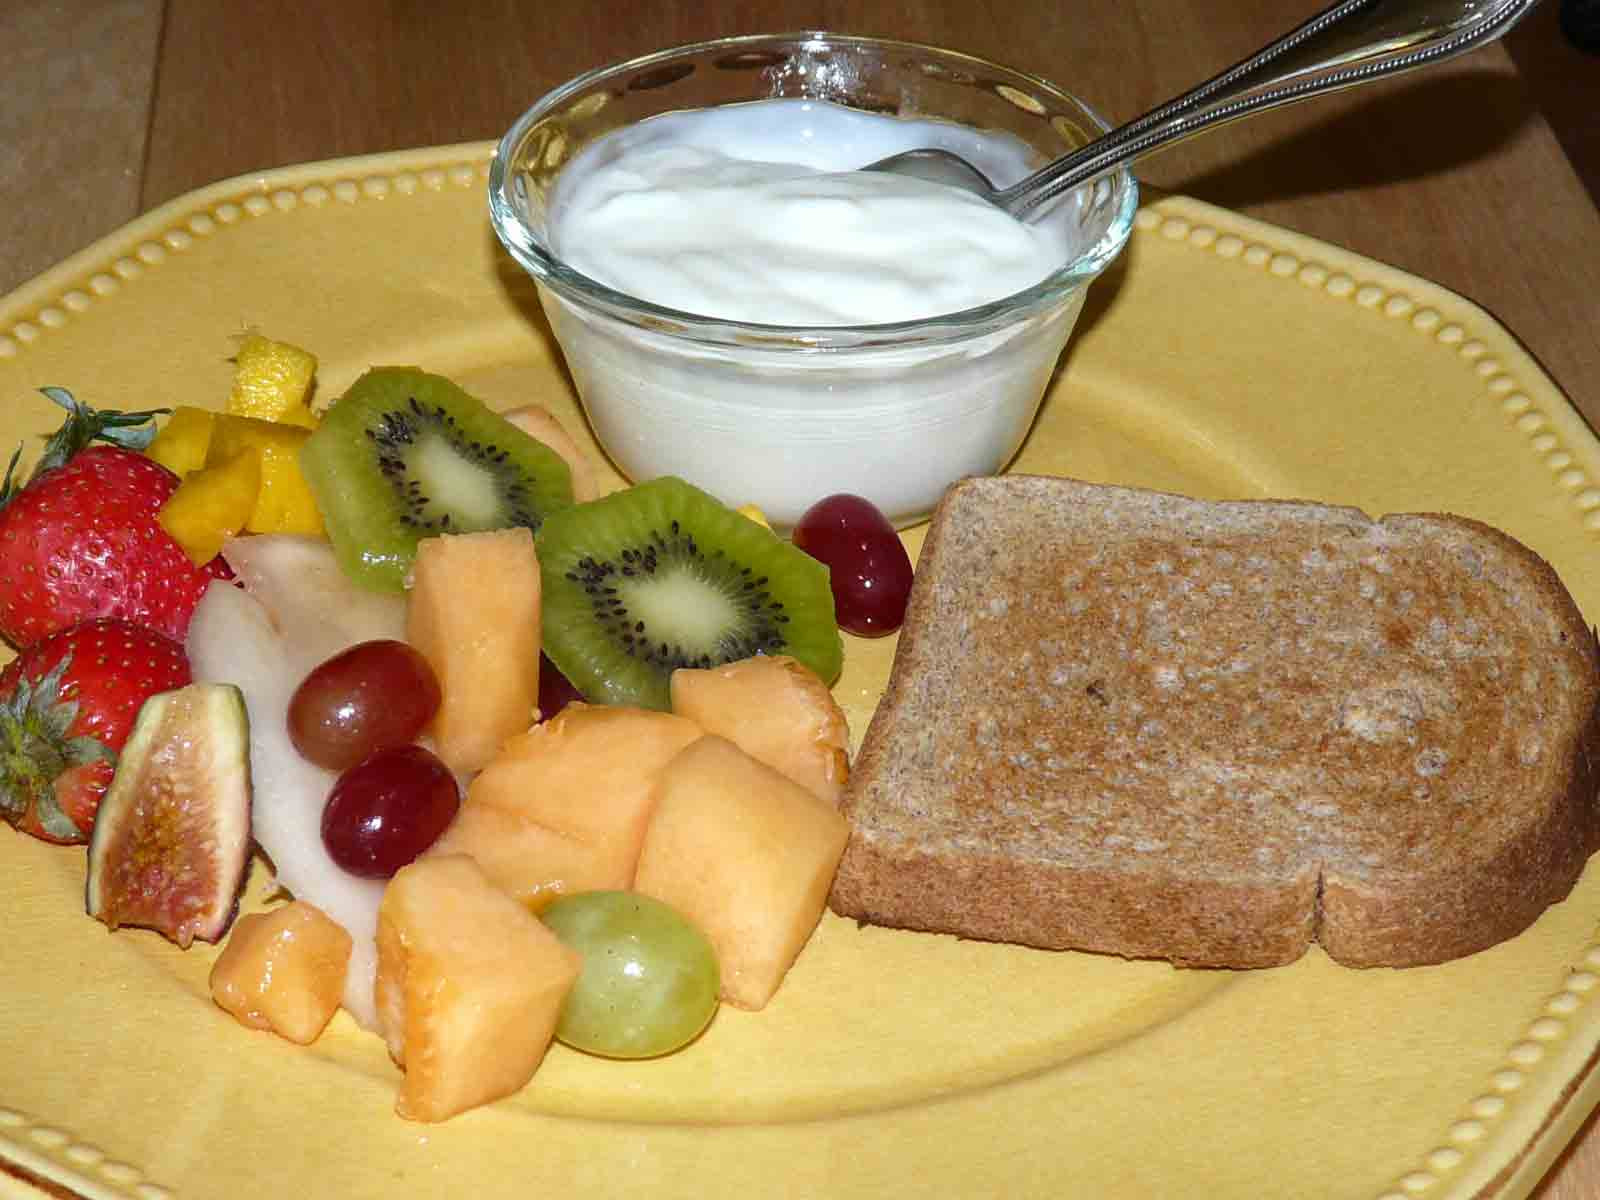 Healthy Things For Breakfast  About Healthy Food Pyramid Racipes for Kids Plate